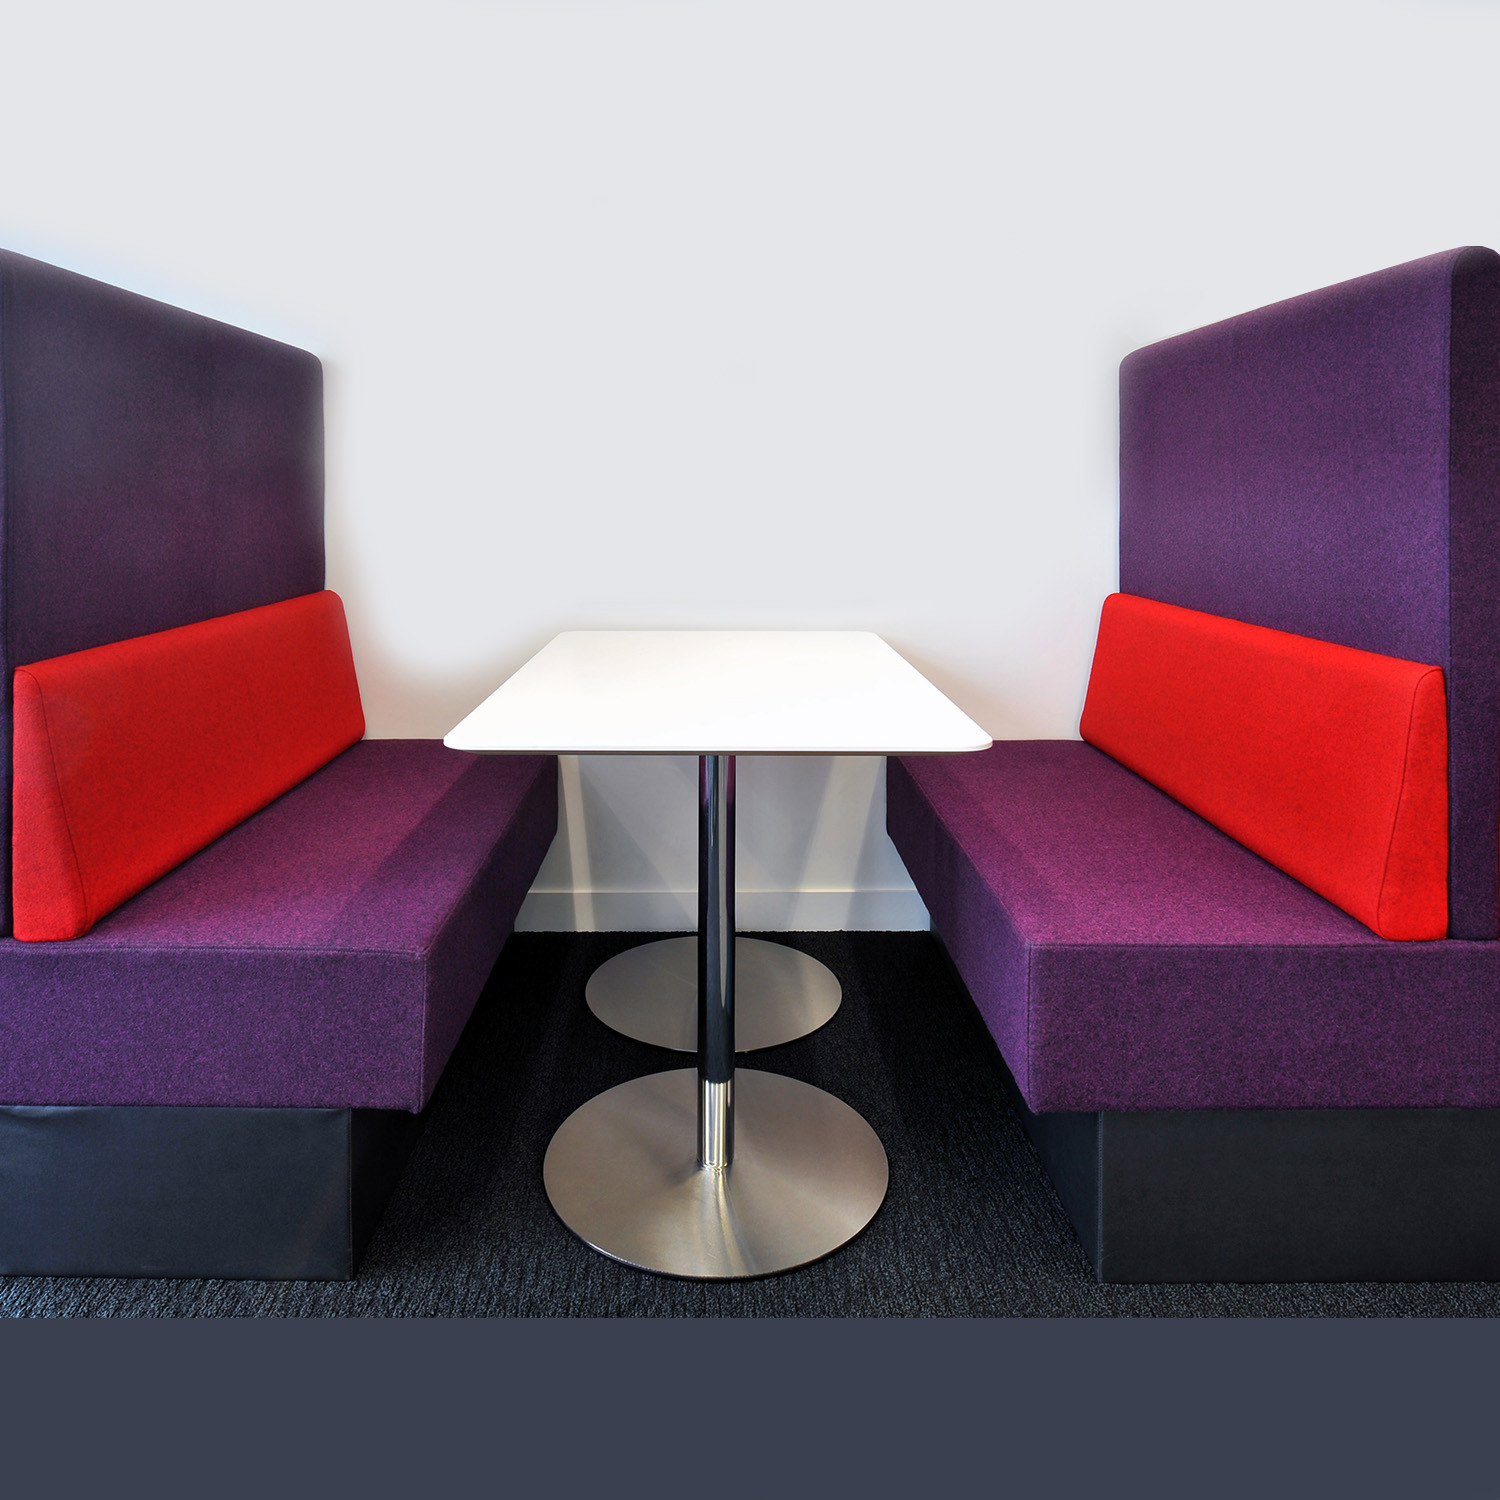 Banquette Seating Uk: Perimeter Banquette Seating